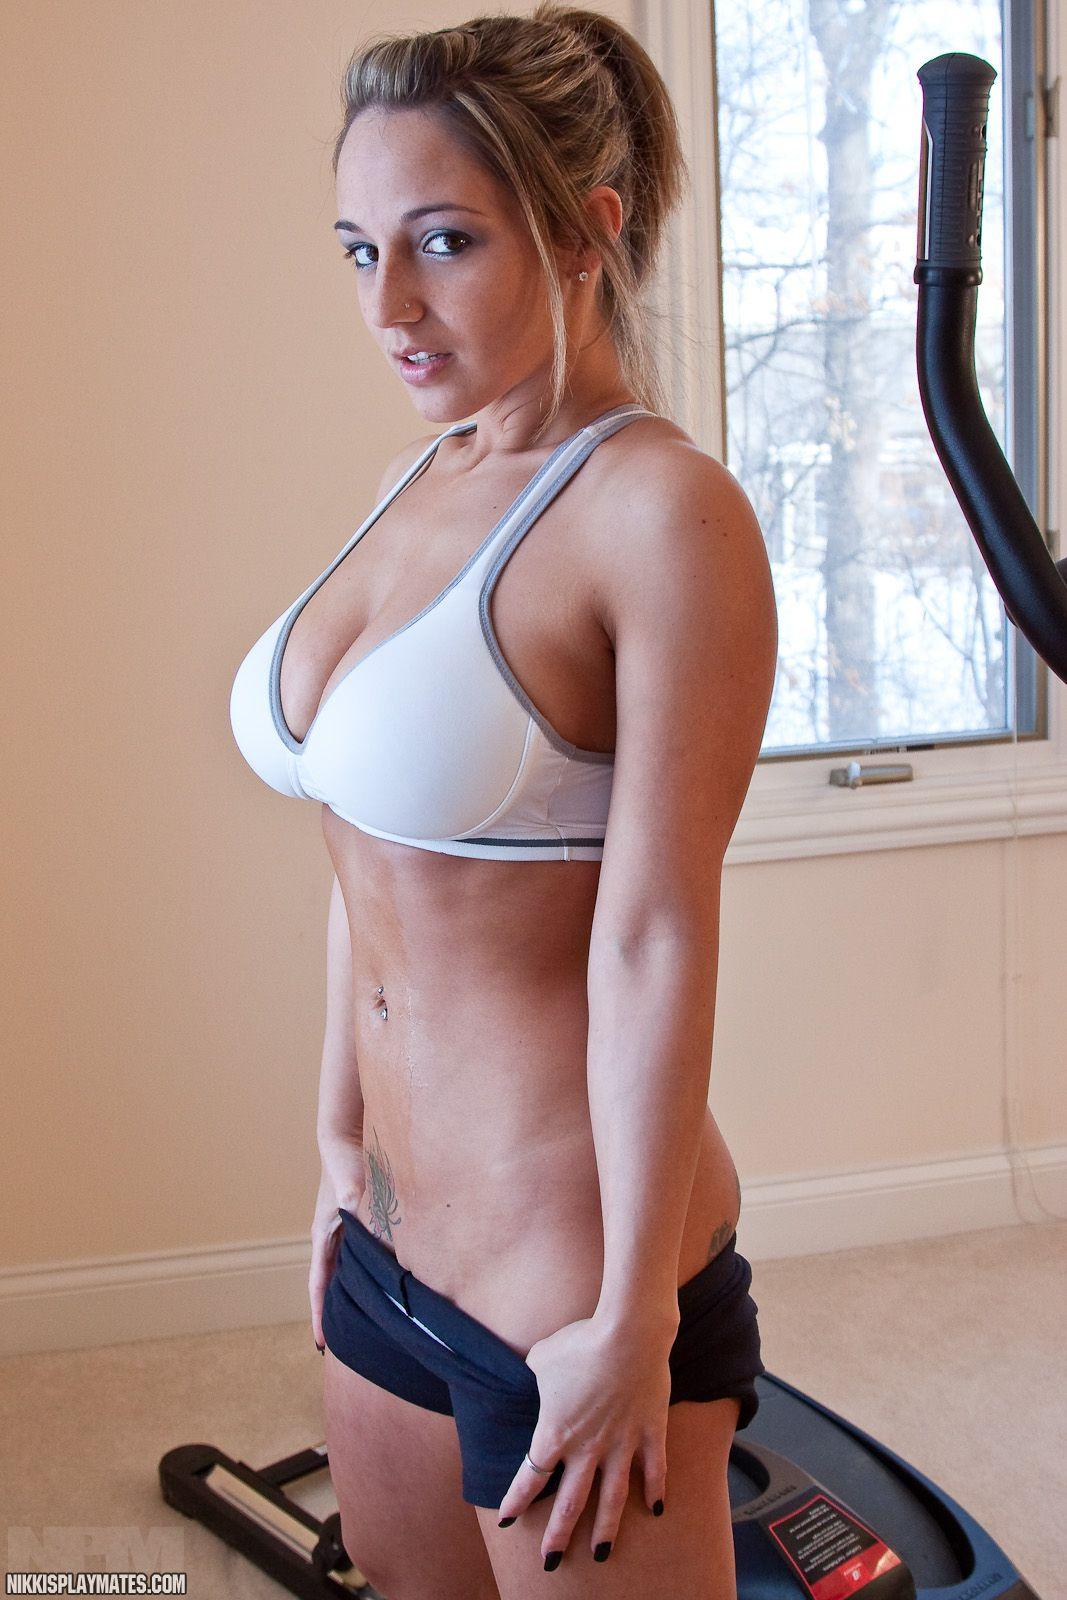 Pictures of Nikki Sims getting hot while she works out ...